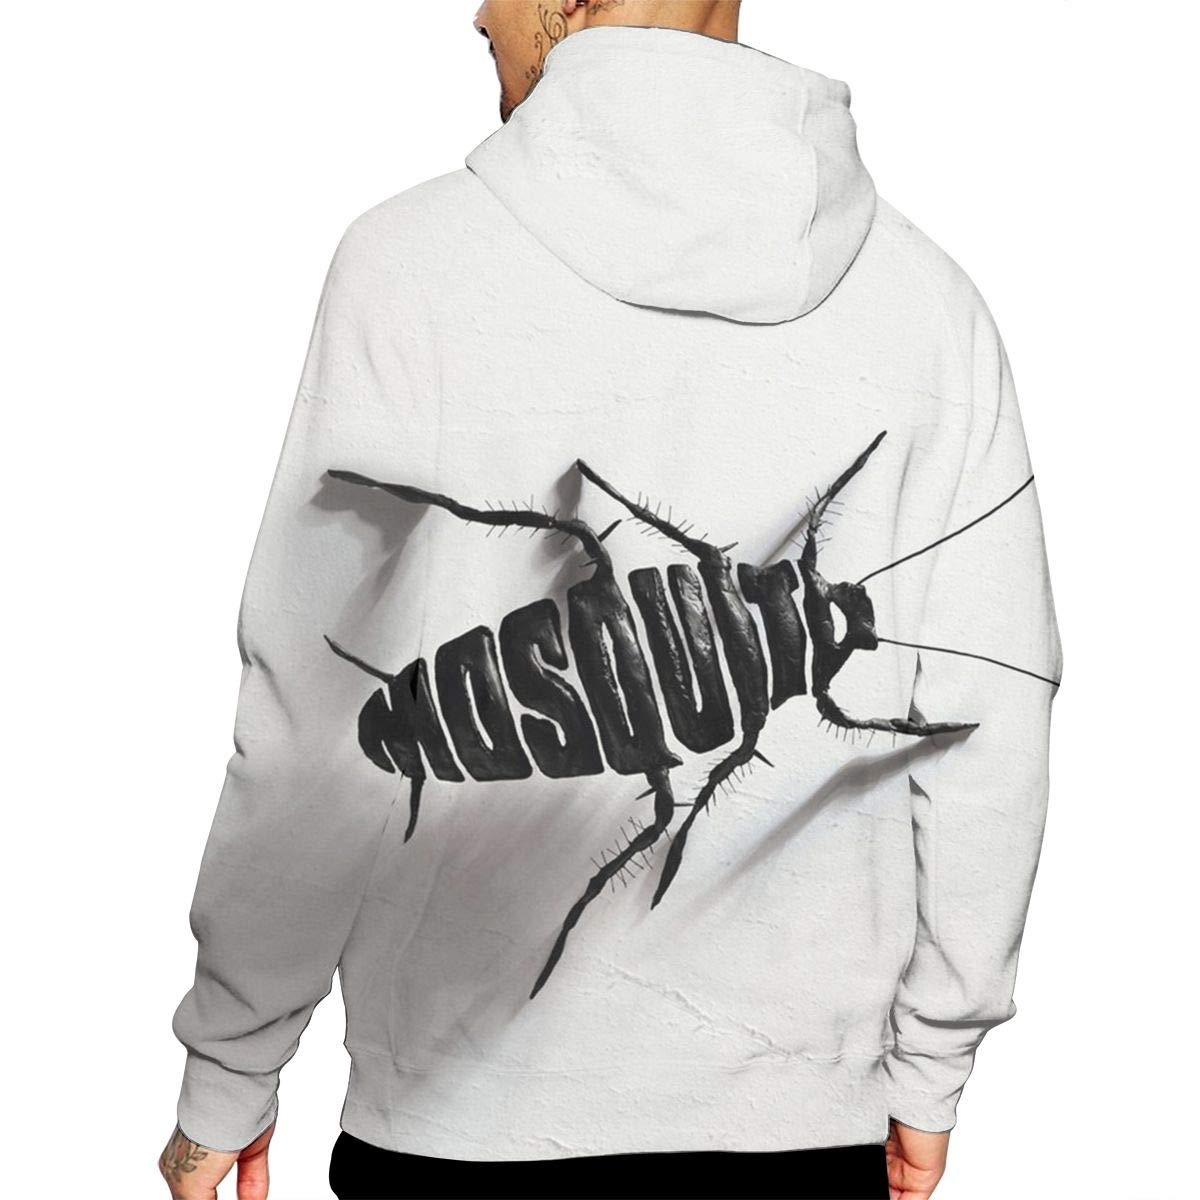 Mosquito Toy Mans Long Sleeve Hoodie Casual Pocket Hooded Sweatshirt